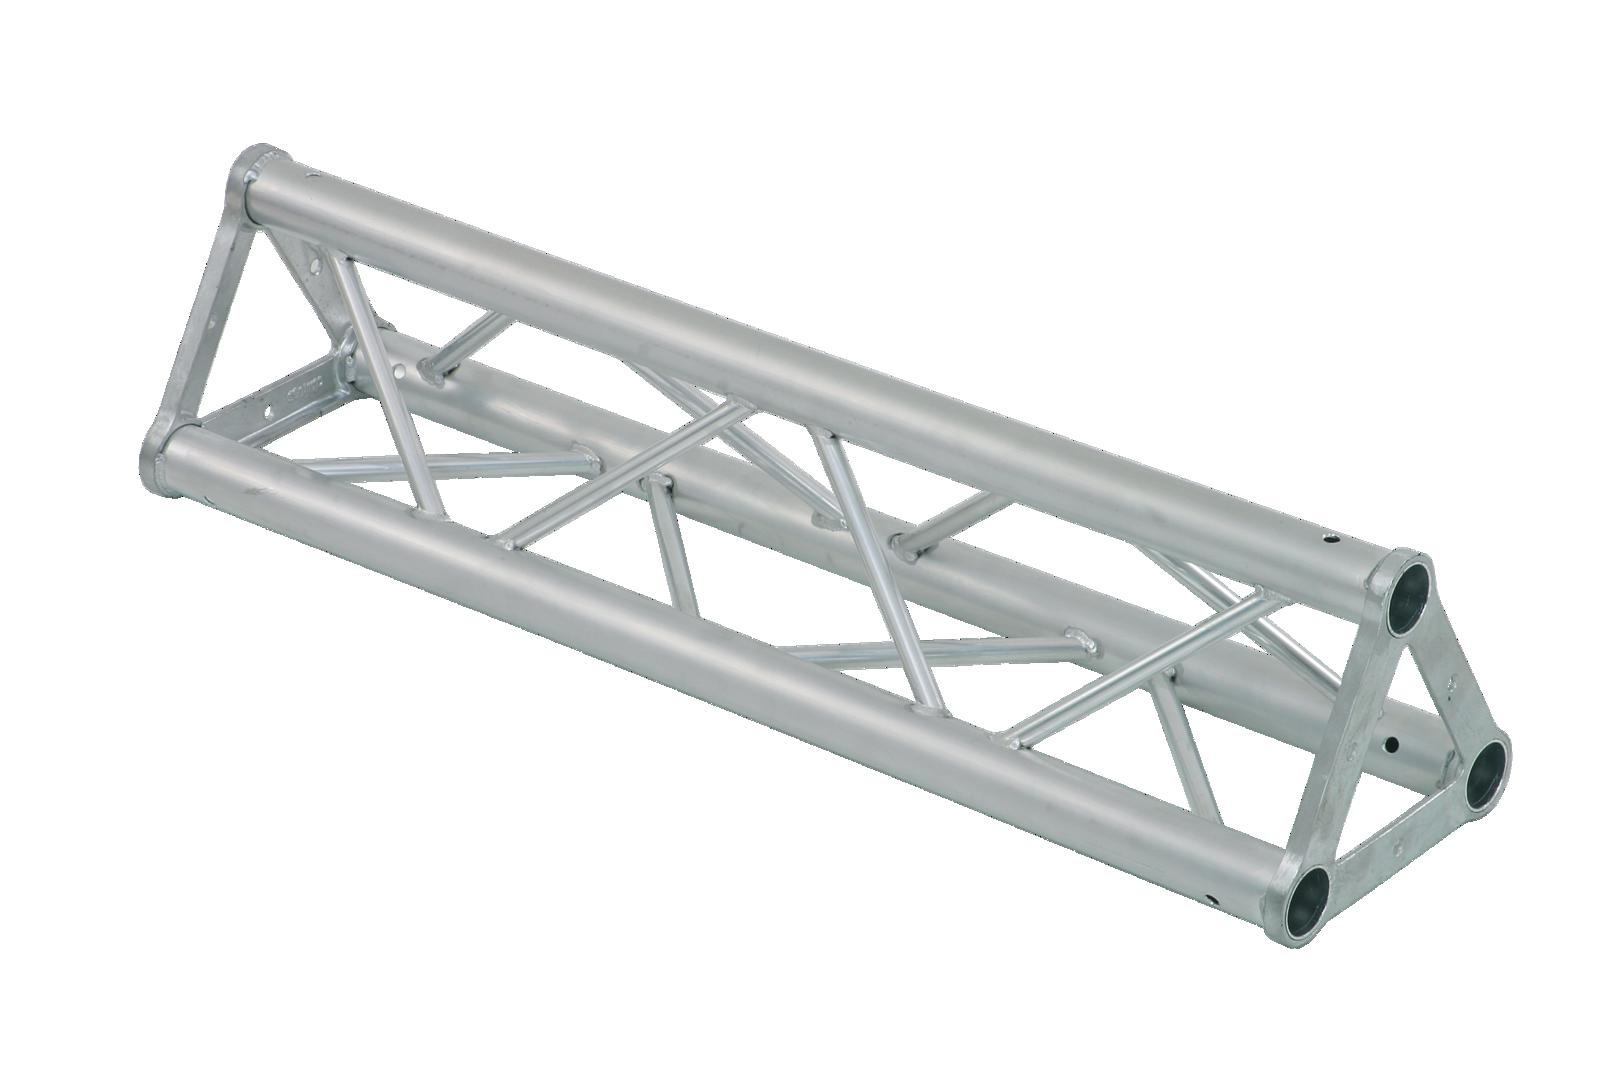 ALUTRUSS TRISYSTEM PST-500 a 3 vie traverse